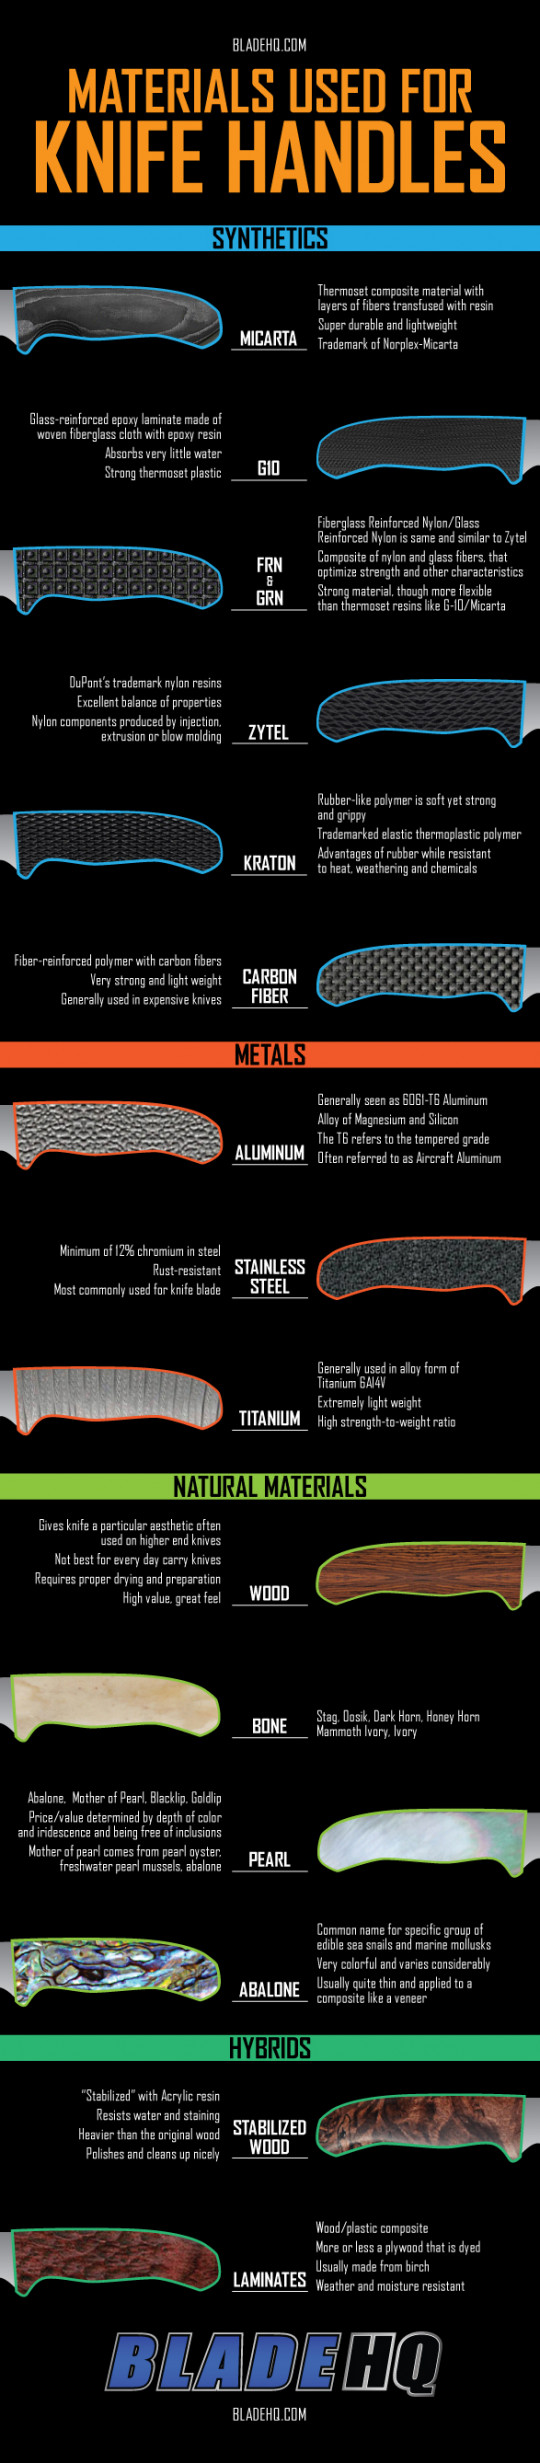 Materials used for Knife Handles